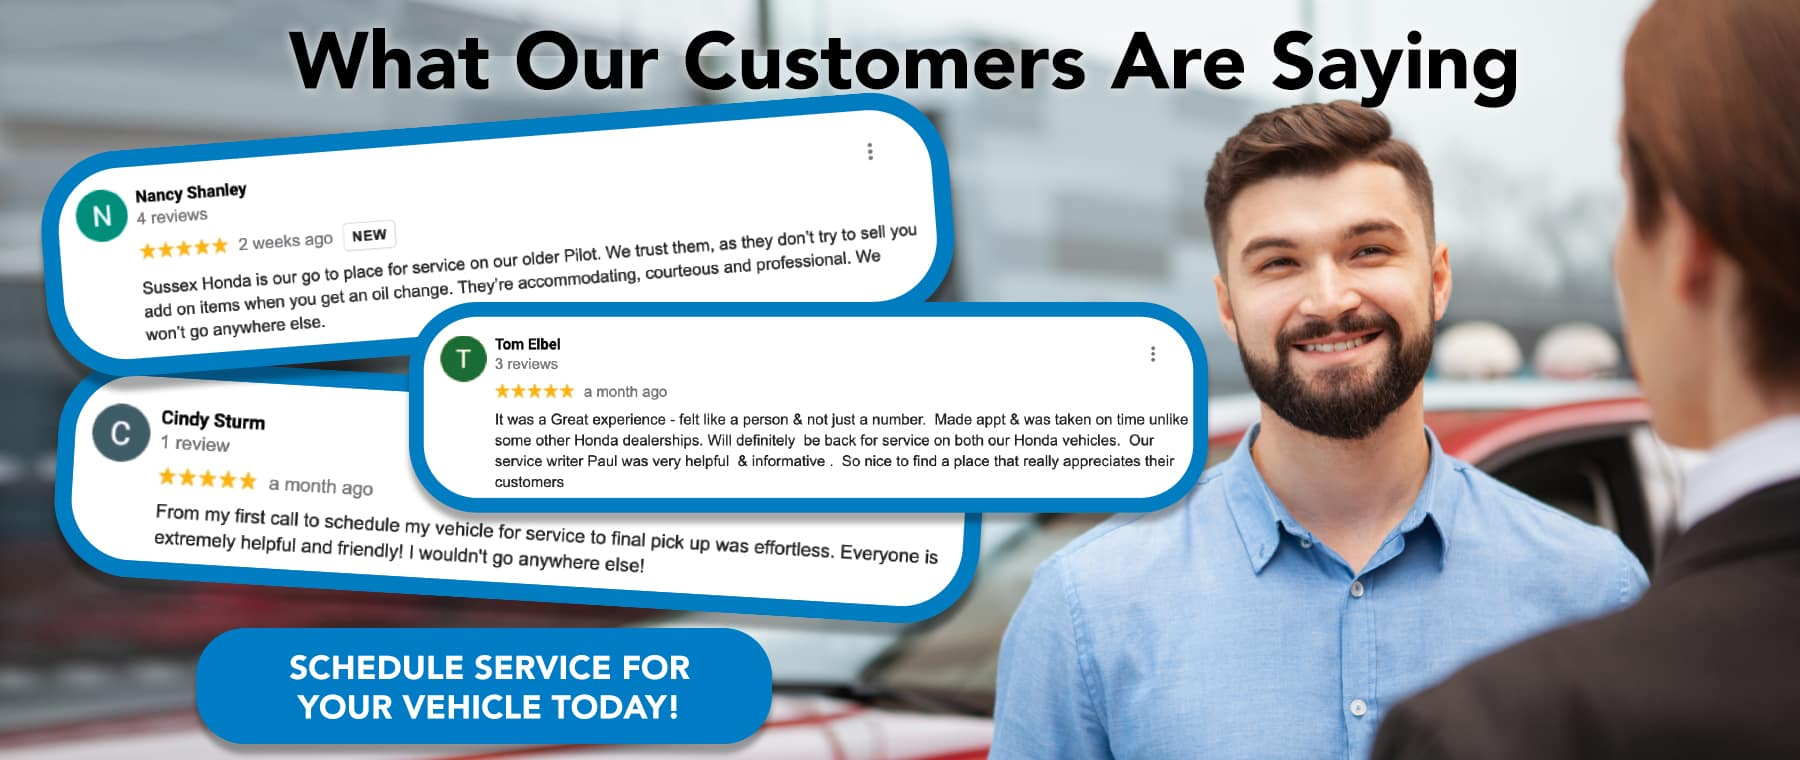 What Our Customers Are Saying Schedule Service For Your Vehicle Today!